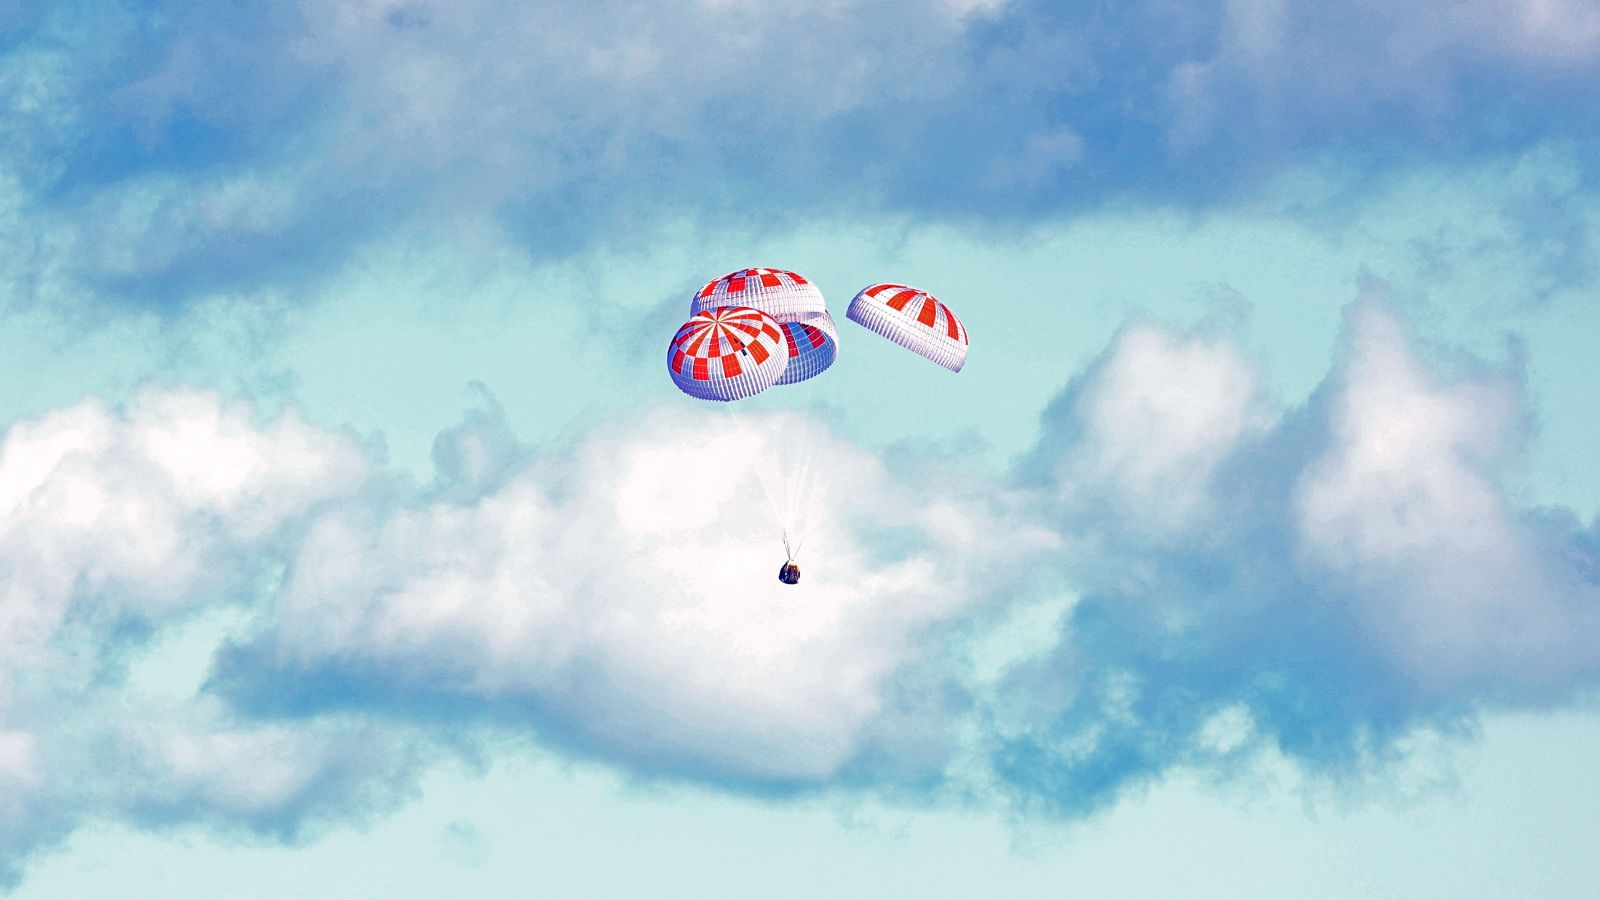 Crew Dragon descends under parachutes toward a splashdown in the Atlantic Ocean. Photo Credit: NASA